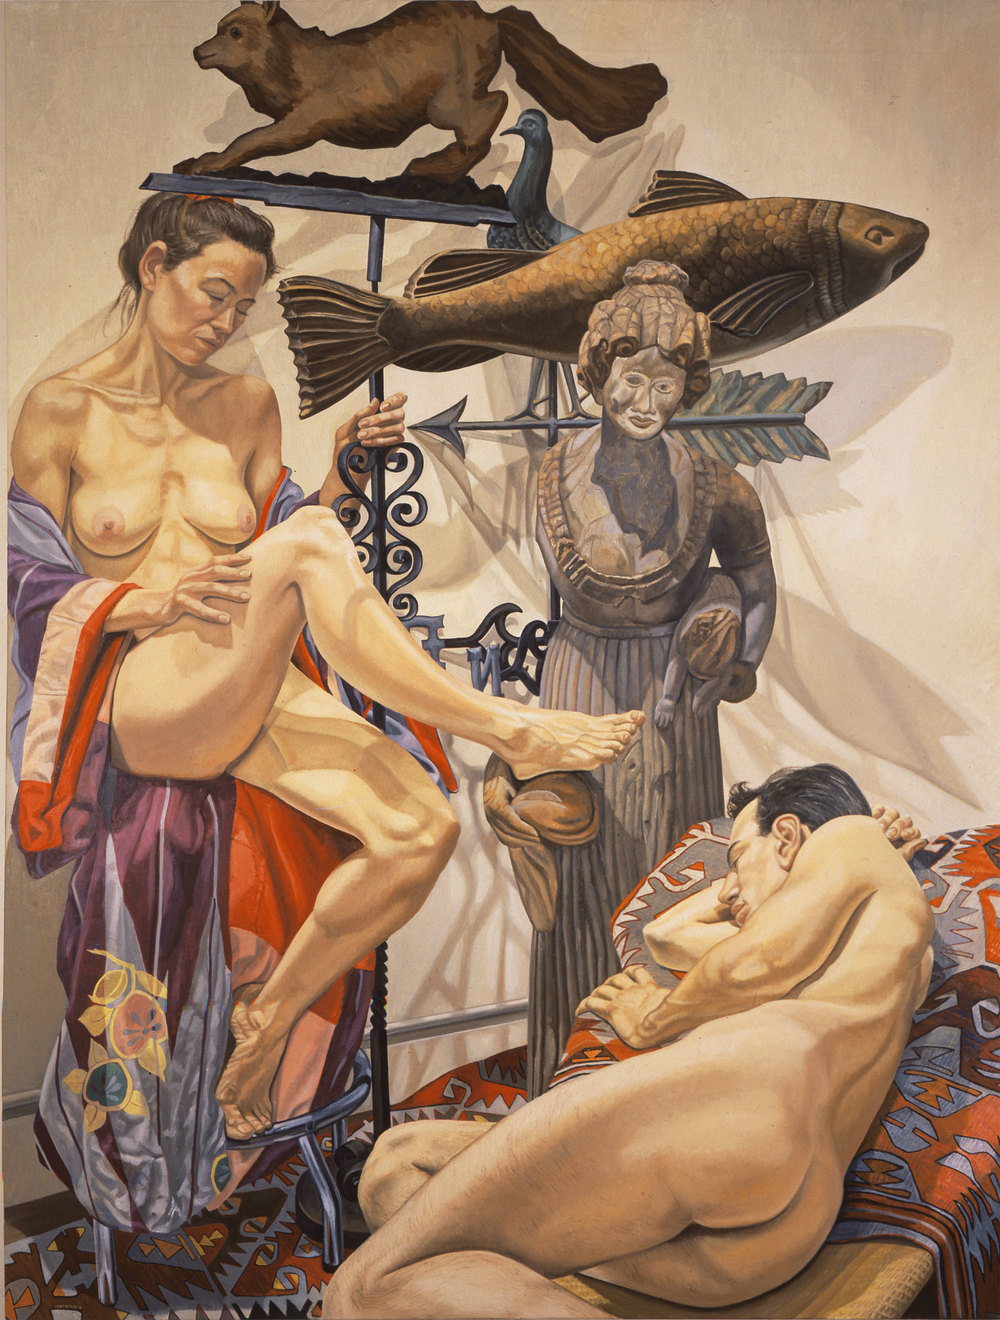 Fox, Fish, Models and Wooden Lady , 1991  Oil on canvas   96 x 72 inches